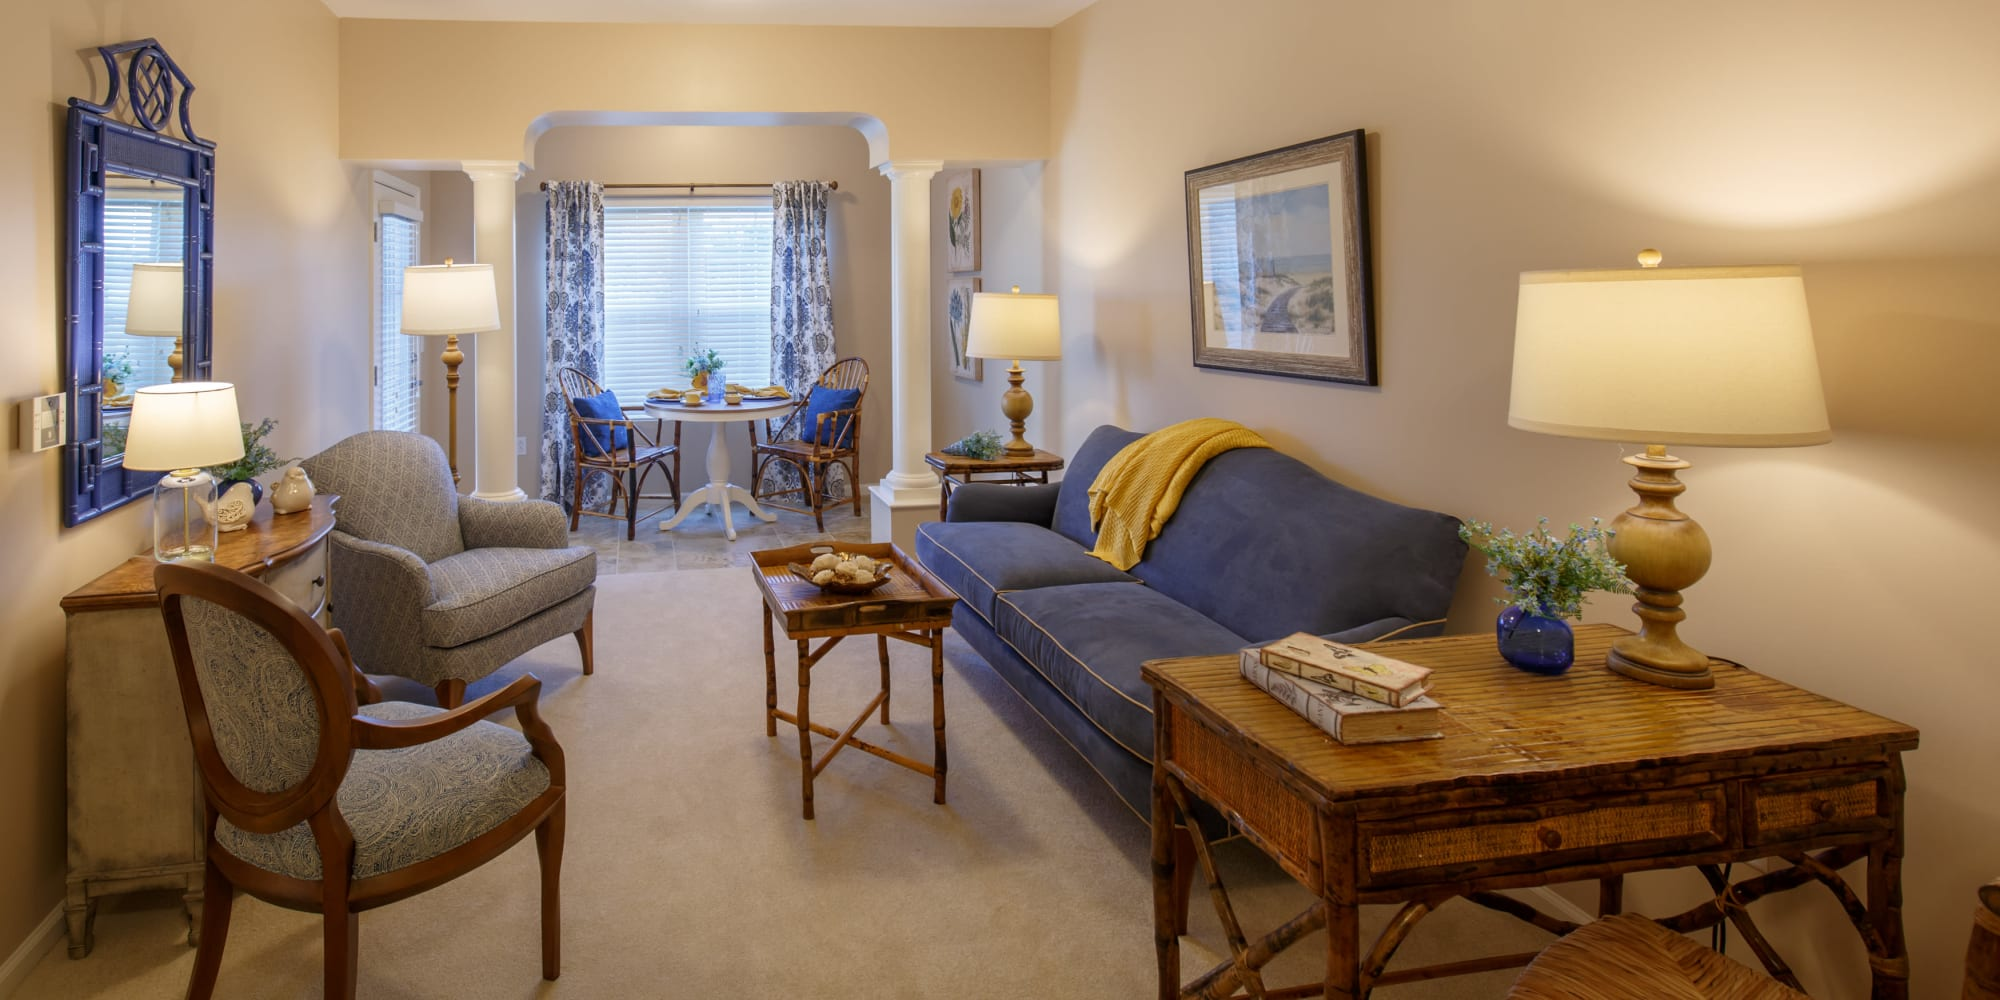 Resident living room at Keystone Place at Terra Bella in Land O' Lakes, Florida.